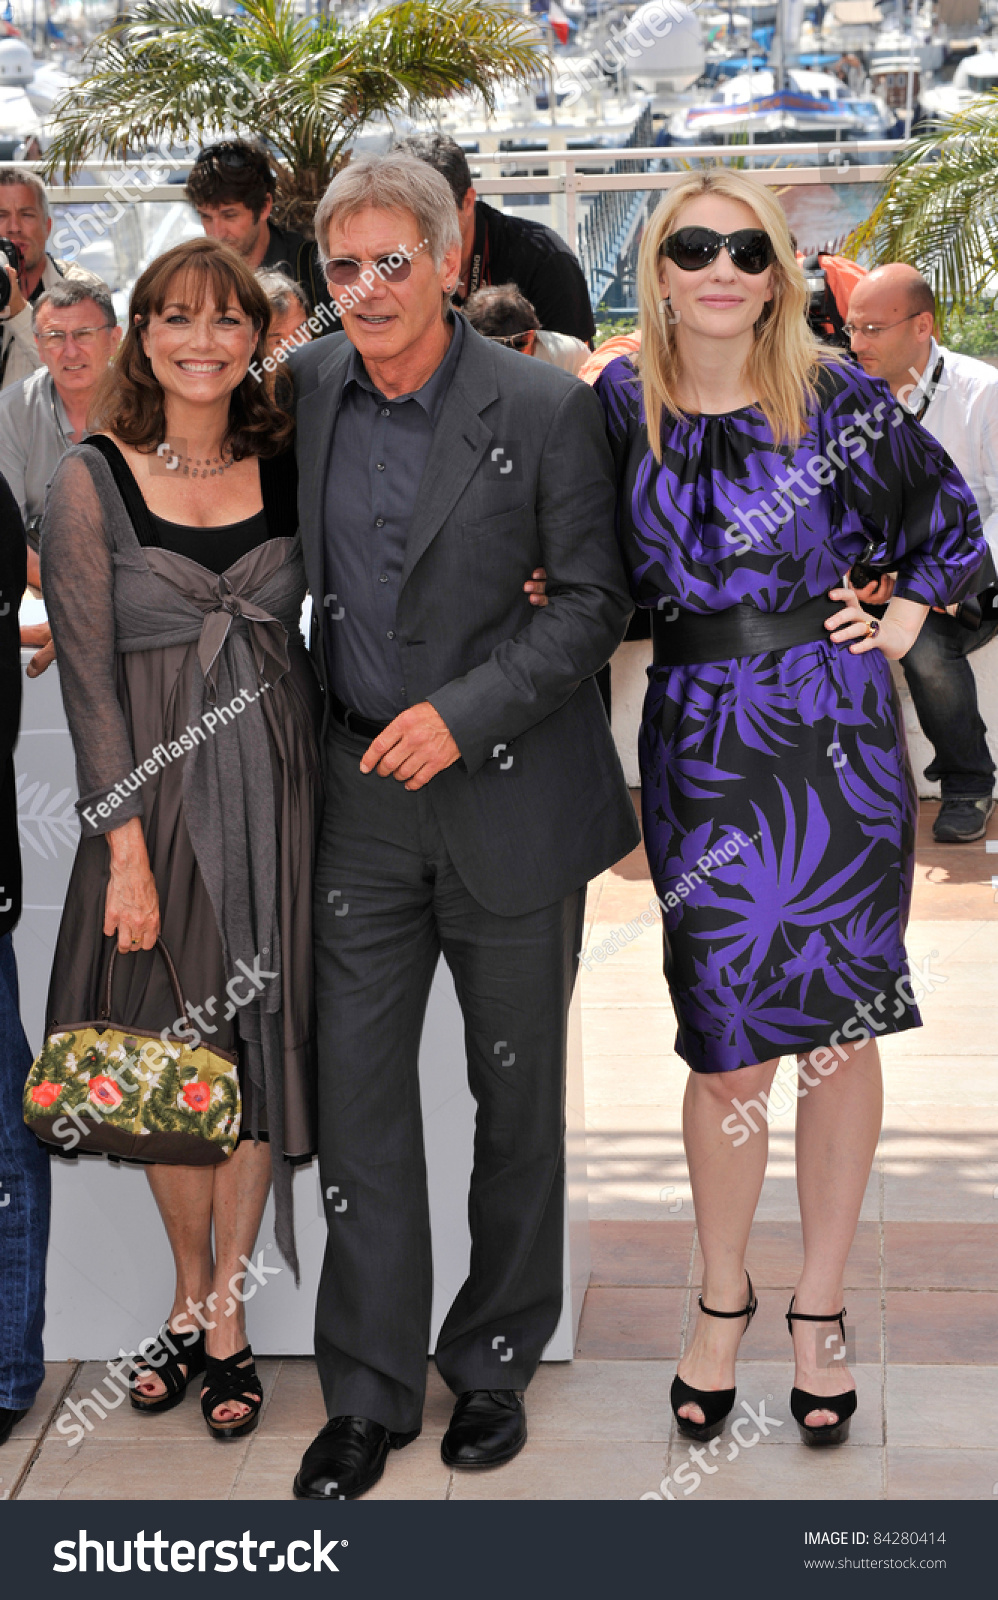 harrison ford karen allen cate blanchett at photocall for indiana jones and the kingdom of. Black Bedroom Furniture Sets. Home Design Ideas